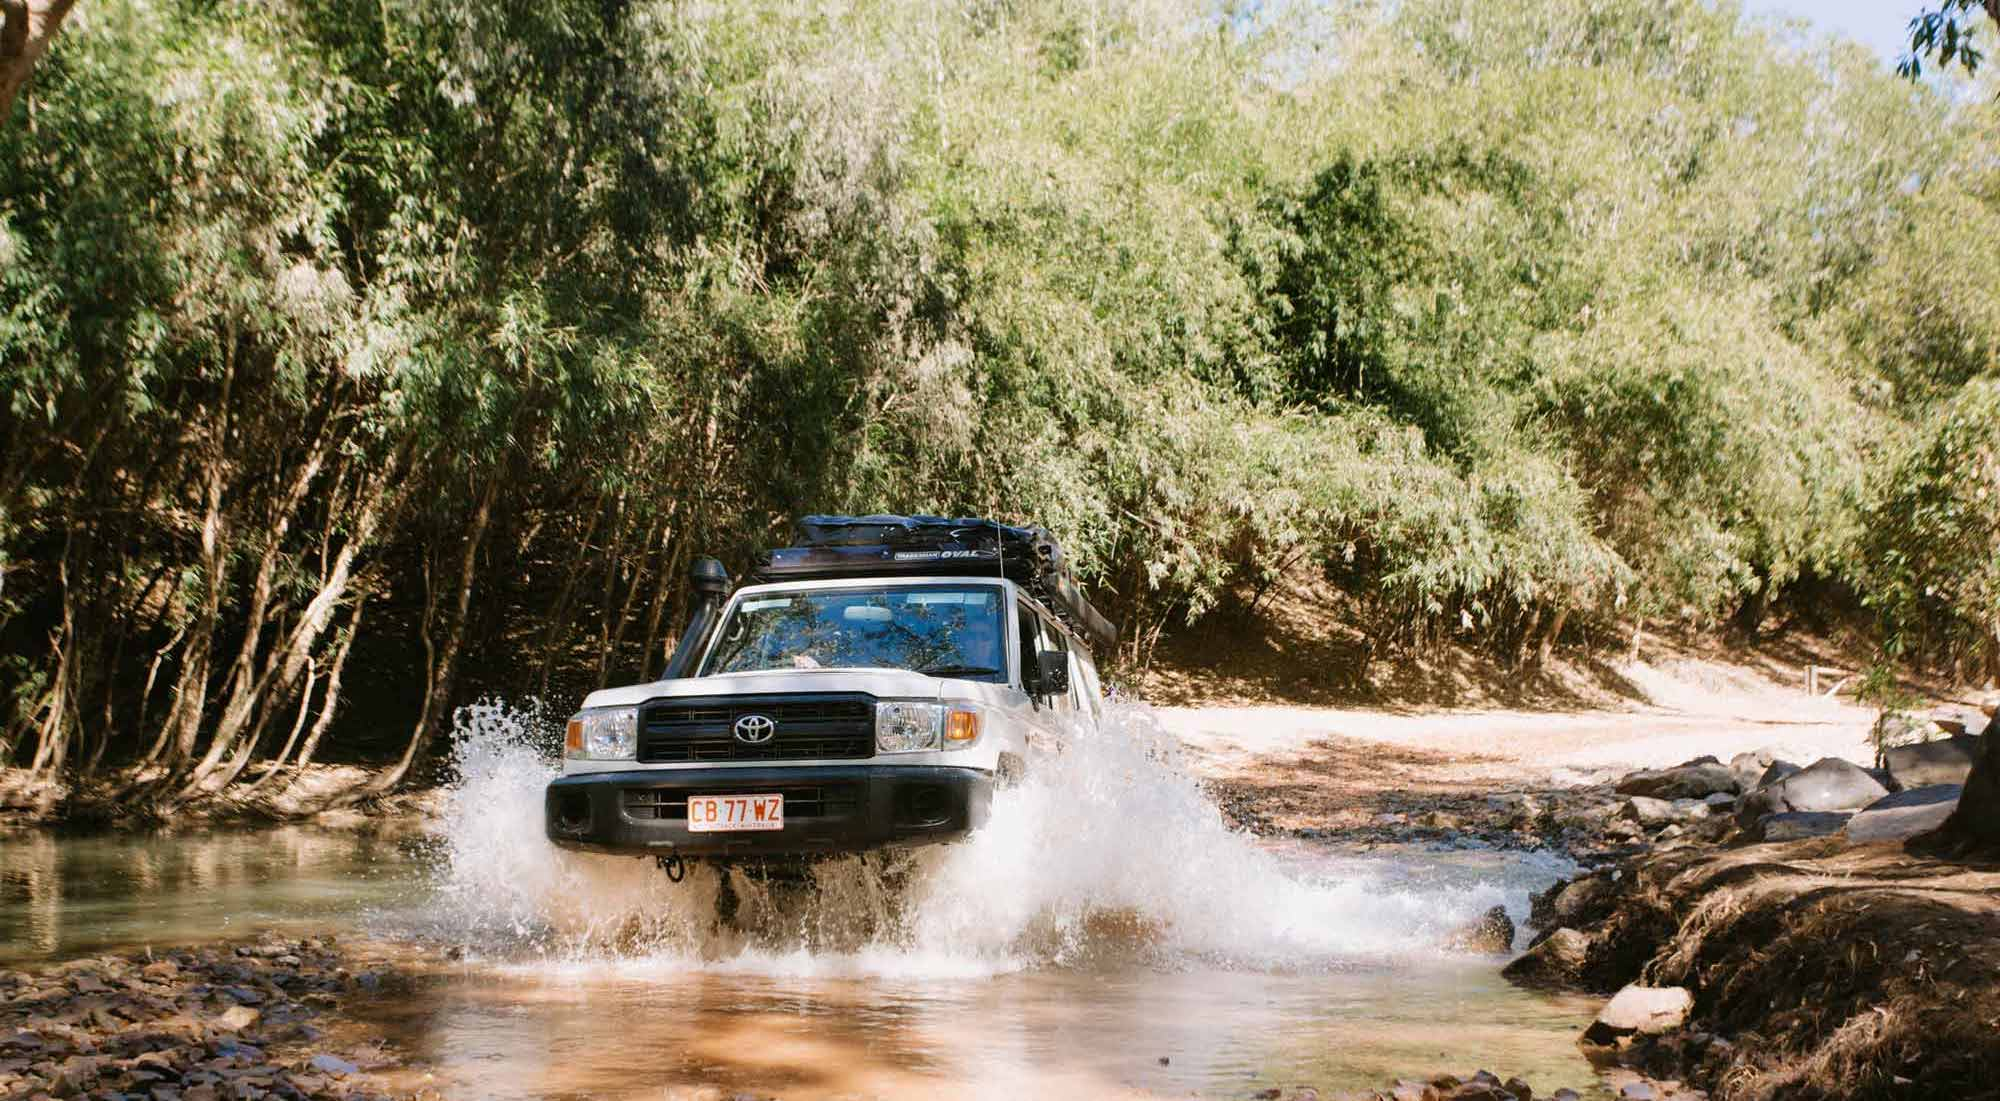 Britz Safari Landcruiser  4WD Watercrossing